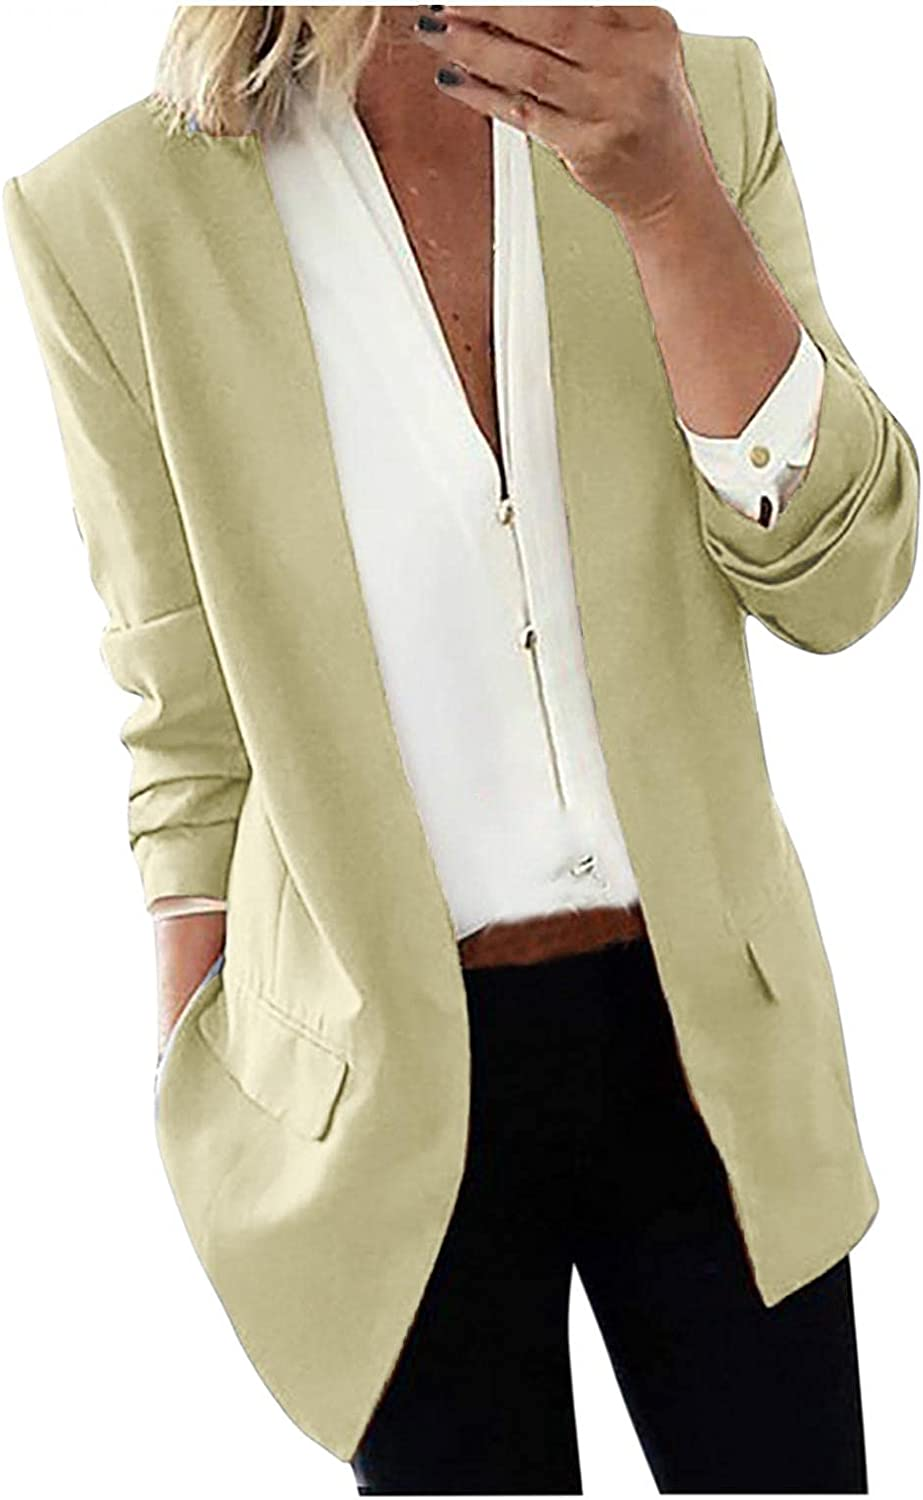 Blazers for Women Business Casual Long Sleeve Jacket With Pocket Fall Cardigan Open Front Solid Color Outwear